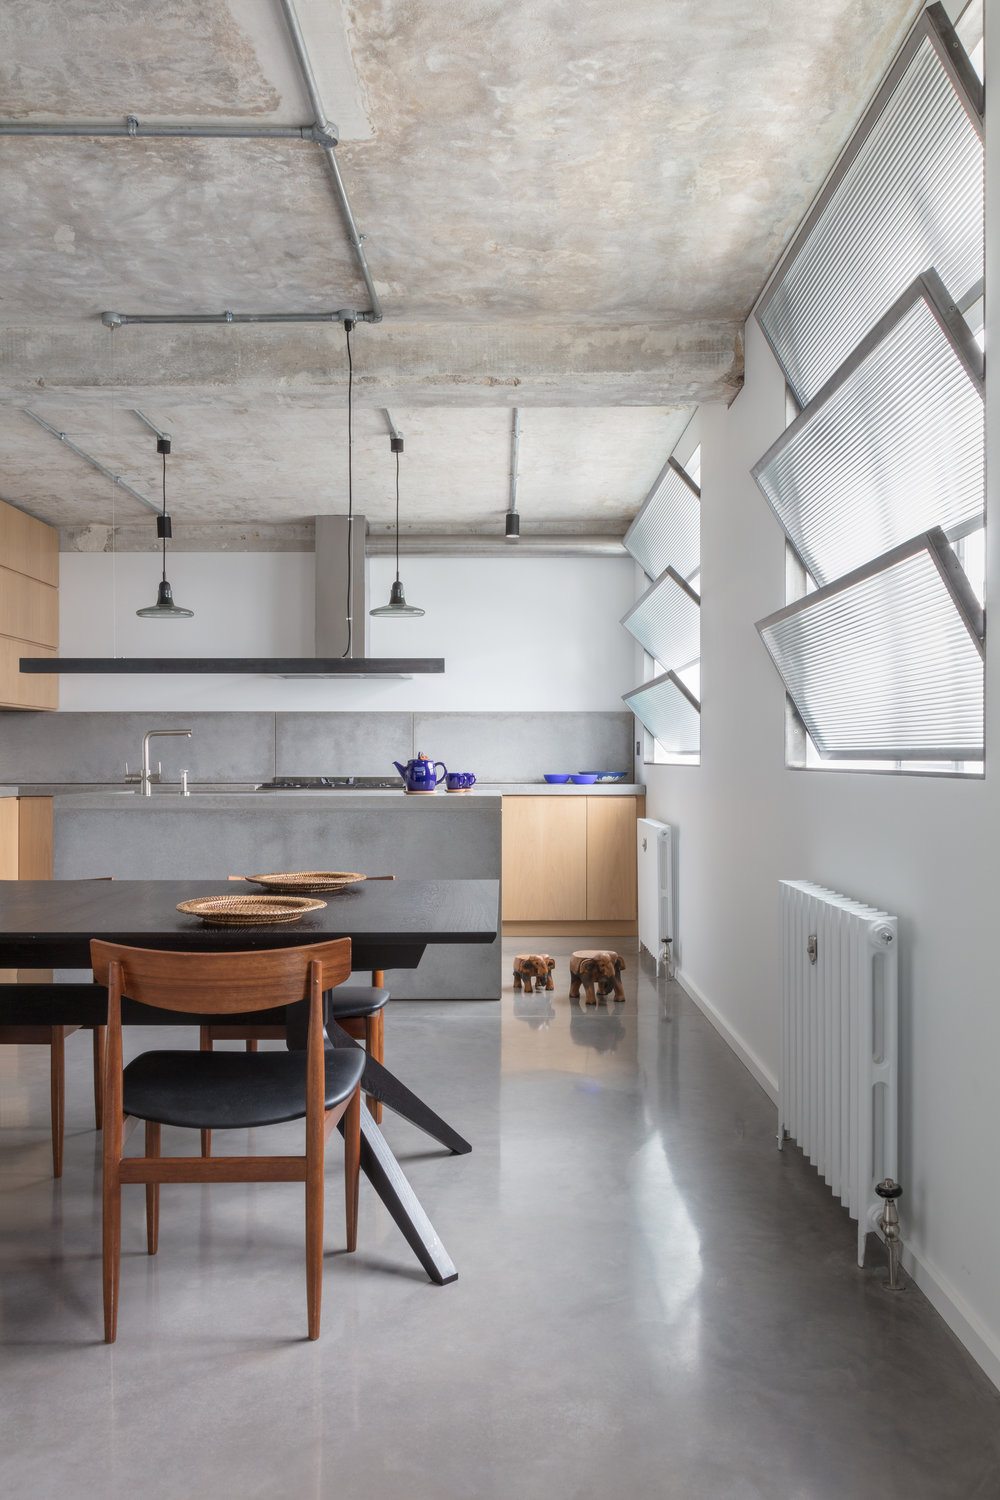 Union-Wharf-Islington-London-Exposed-Concrete-Kitchen-Dining-Design-Interior-Architect.jpg